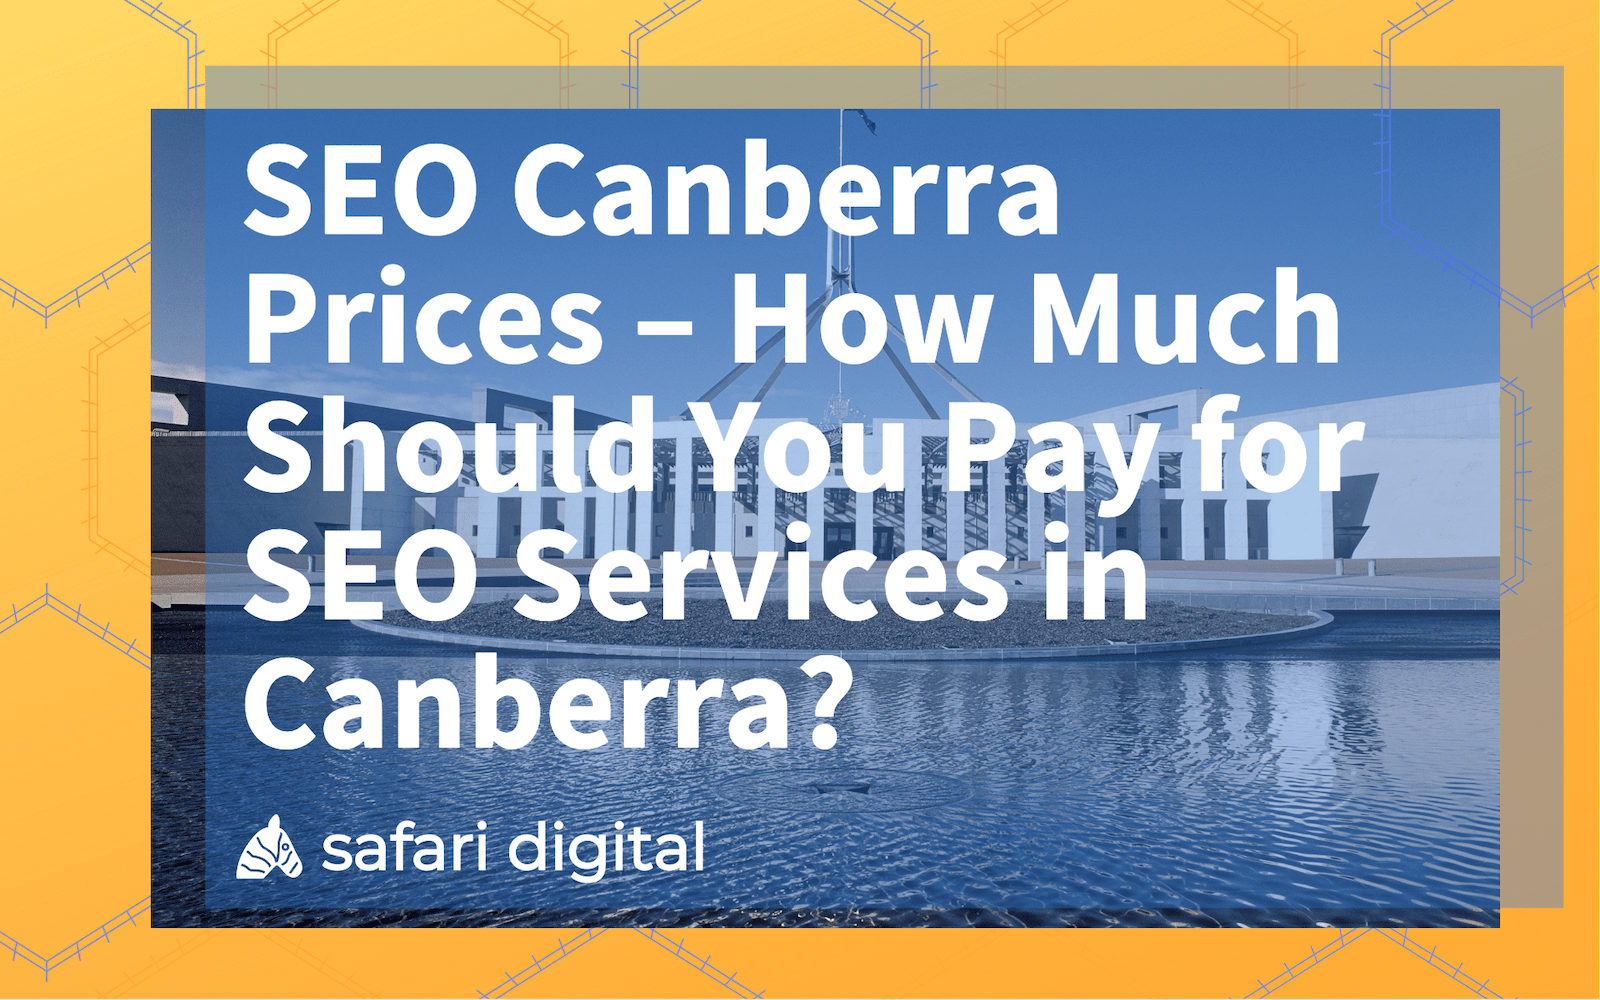 seo canberra prices safari digital cover image large